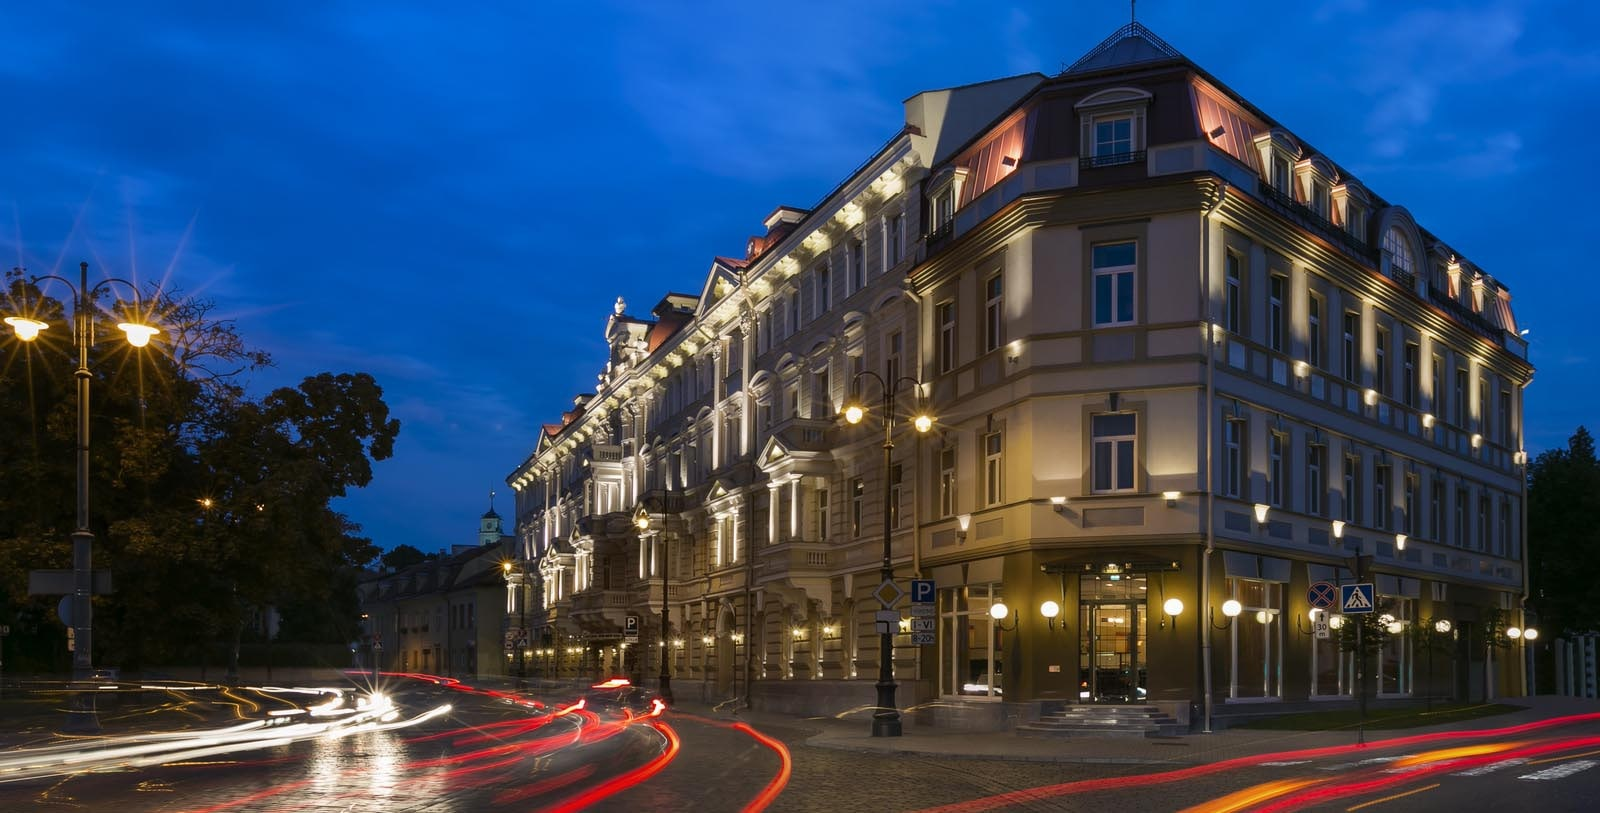 Image of Hotel Exterior Kempinski Hotel Cathedral Square, 1900, Member of Historic Hotels Worldwide, in Vilnius, Lithuania, Special Offers, Discounted Rates, Families, Romantic Escape, Honeymoons, Anniversaries, Reunions